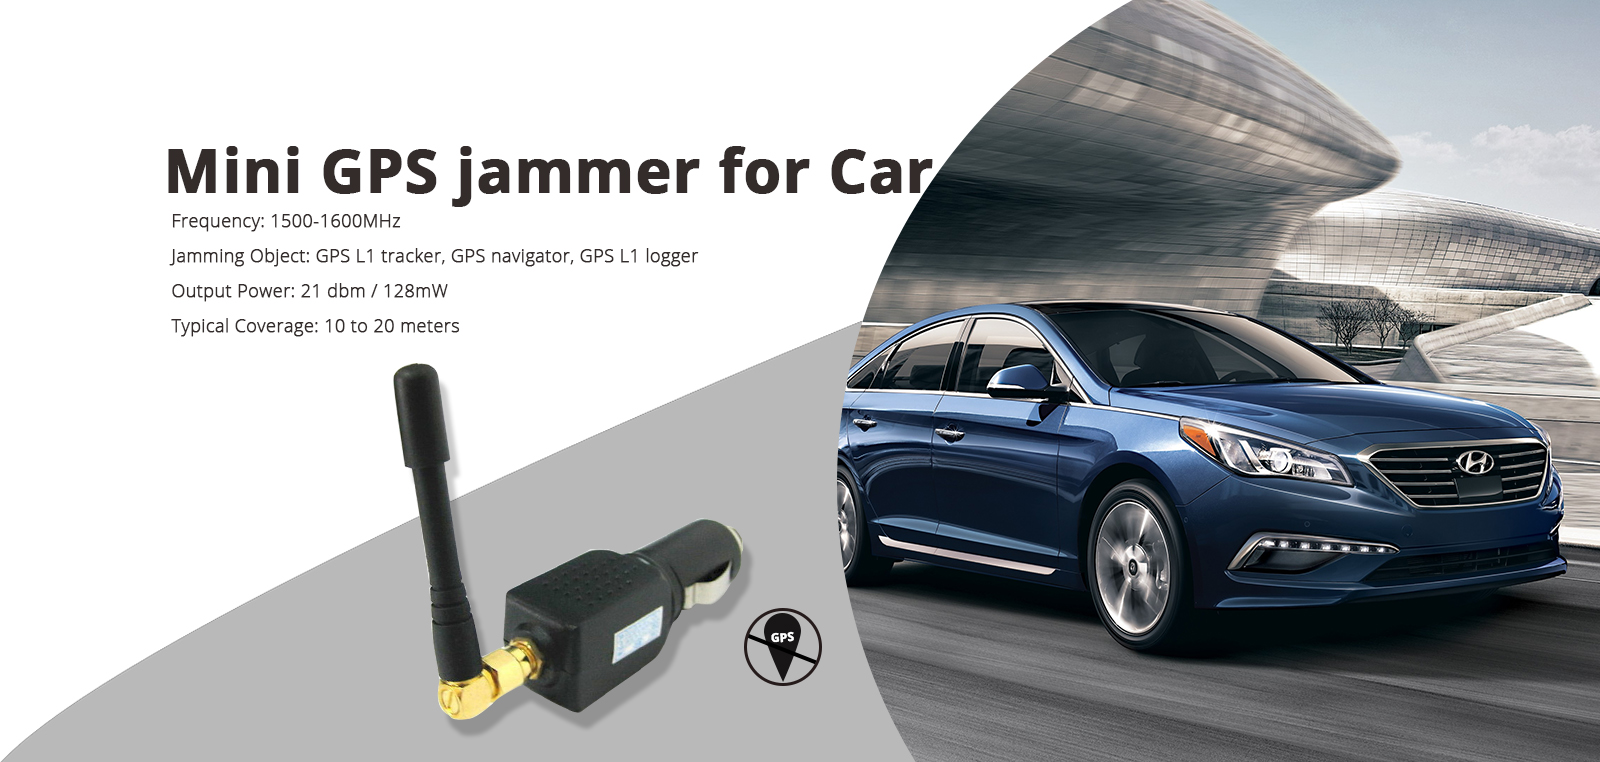 3g cell phone jammer - Where are the GPS jammers used on mobile phones? - Jammer-buy Forum